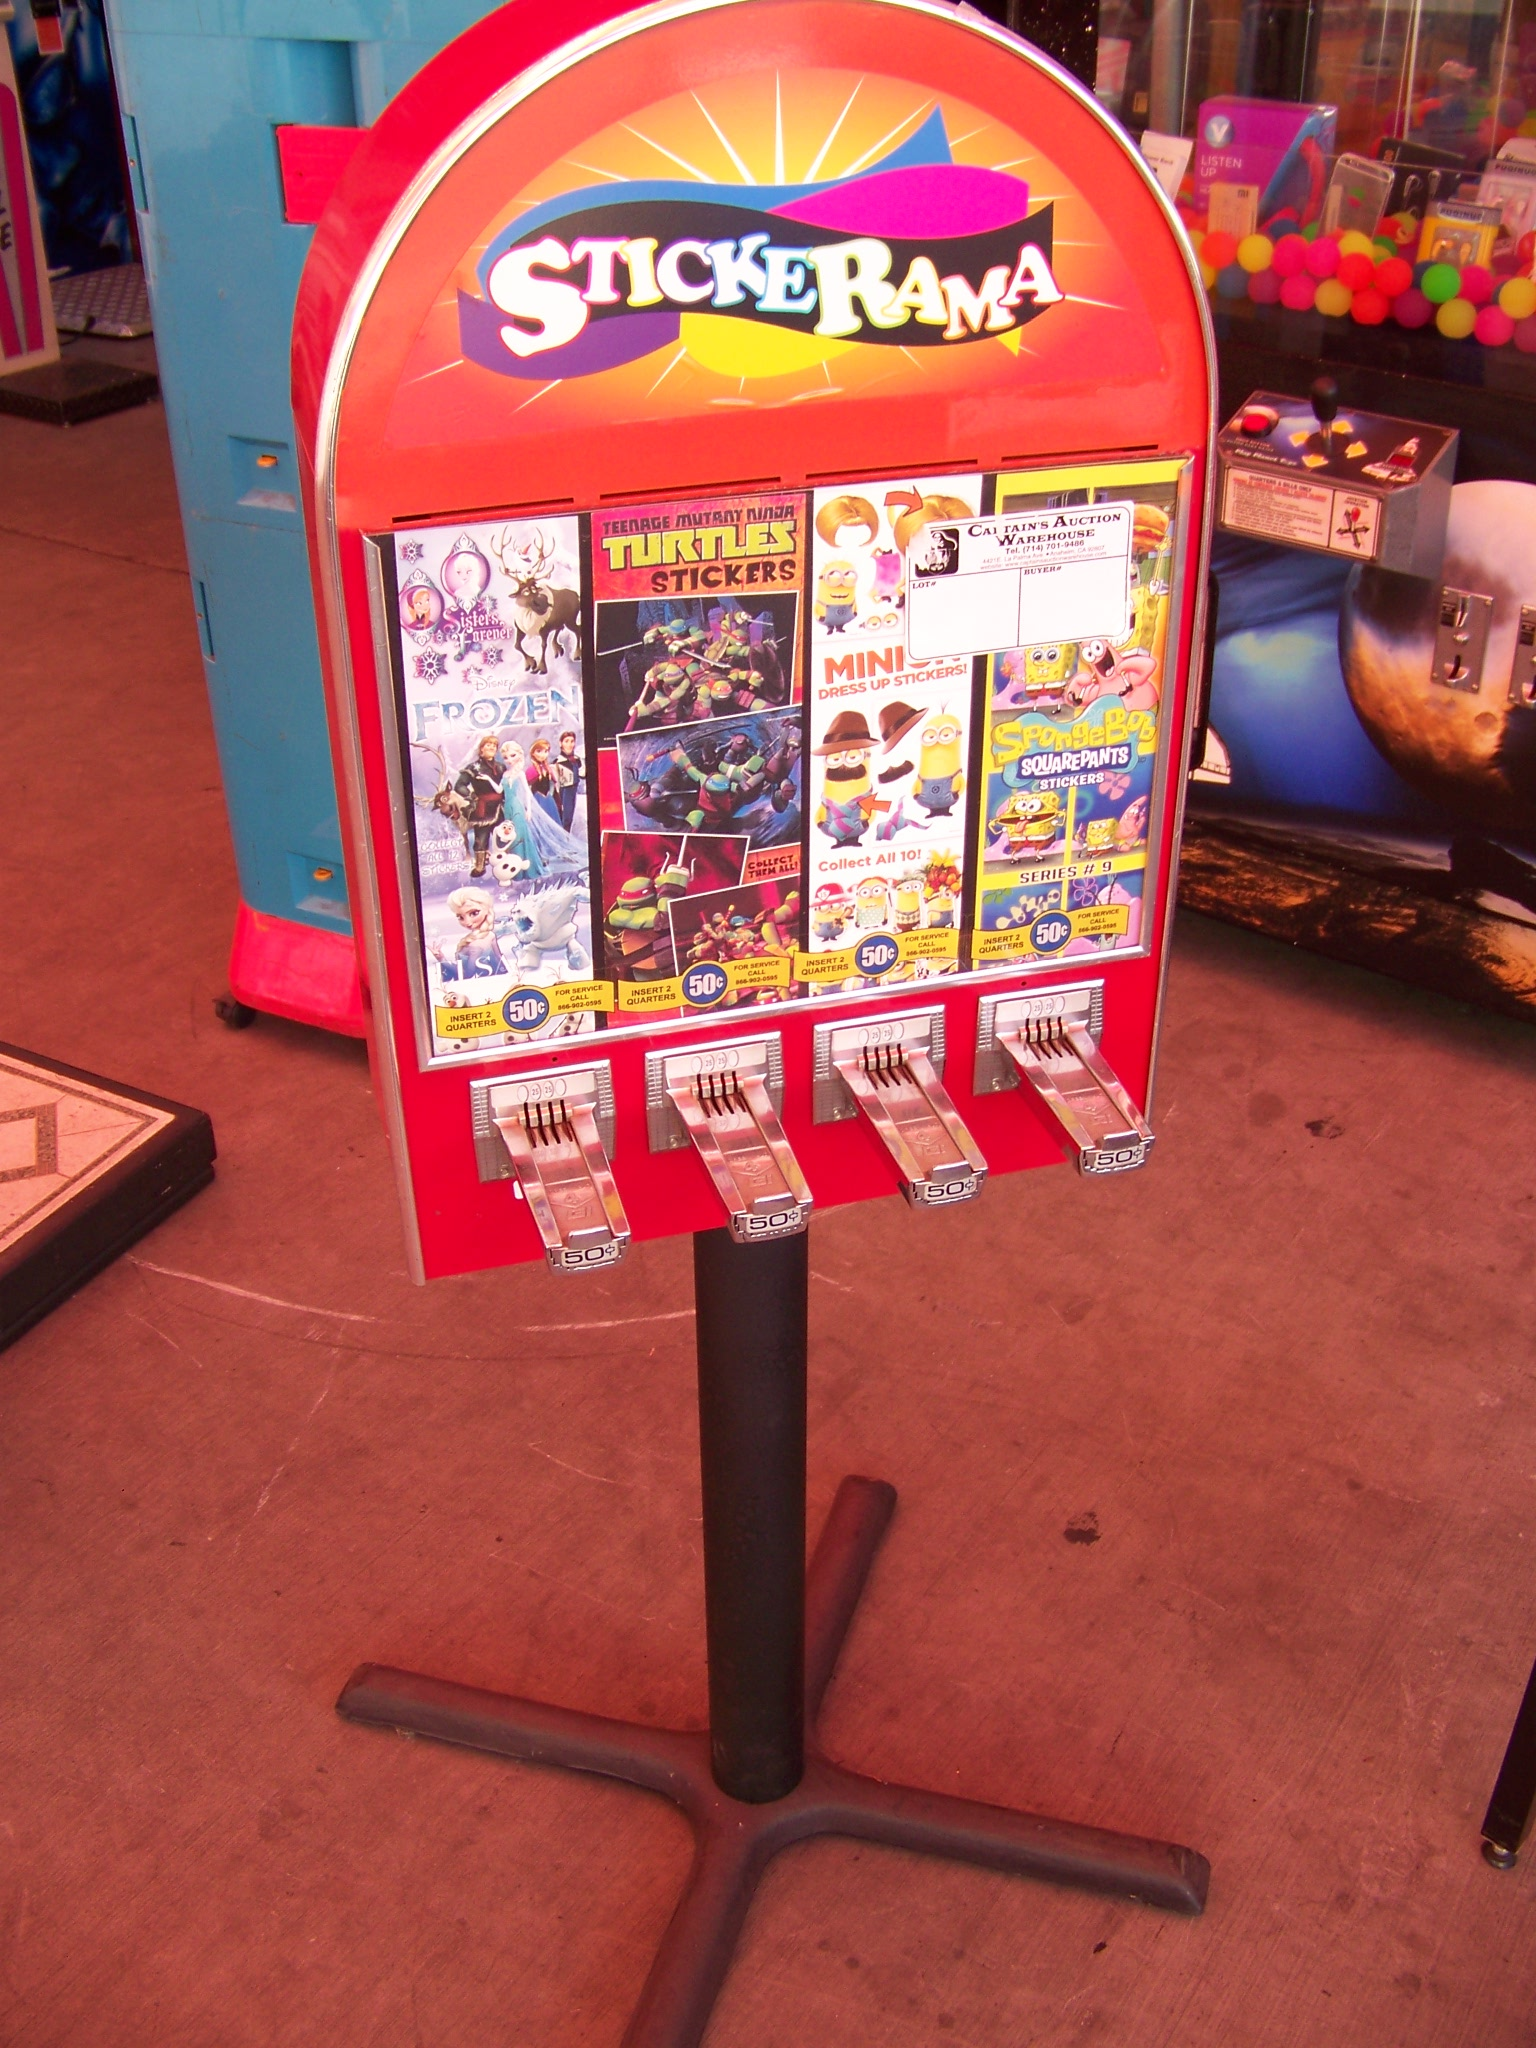 Lot 20 - 4 SELECT ALL STAR STICKER TATTOO VENDING MACHINE Item is in used condition. Evidence of wear and